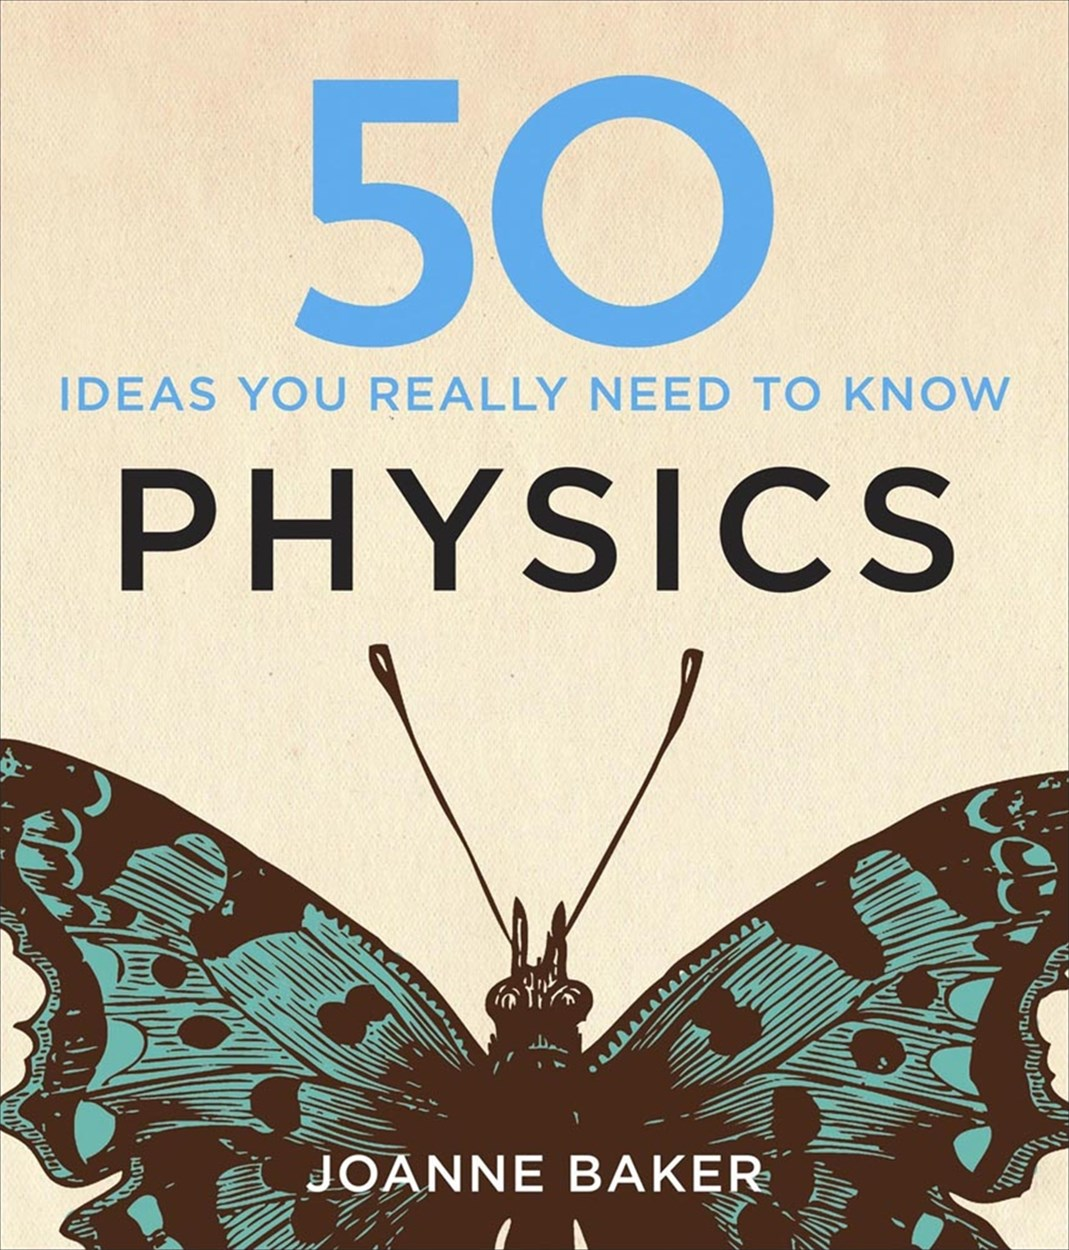 50 Physics Ideas You Really Need to Know